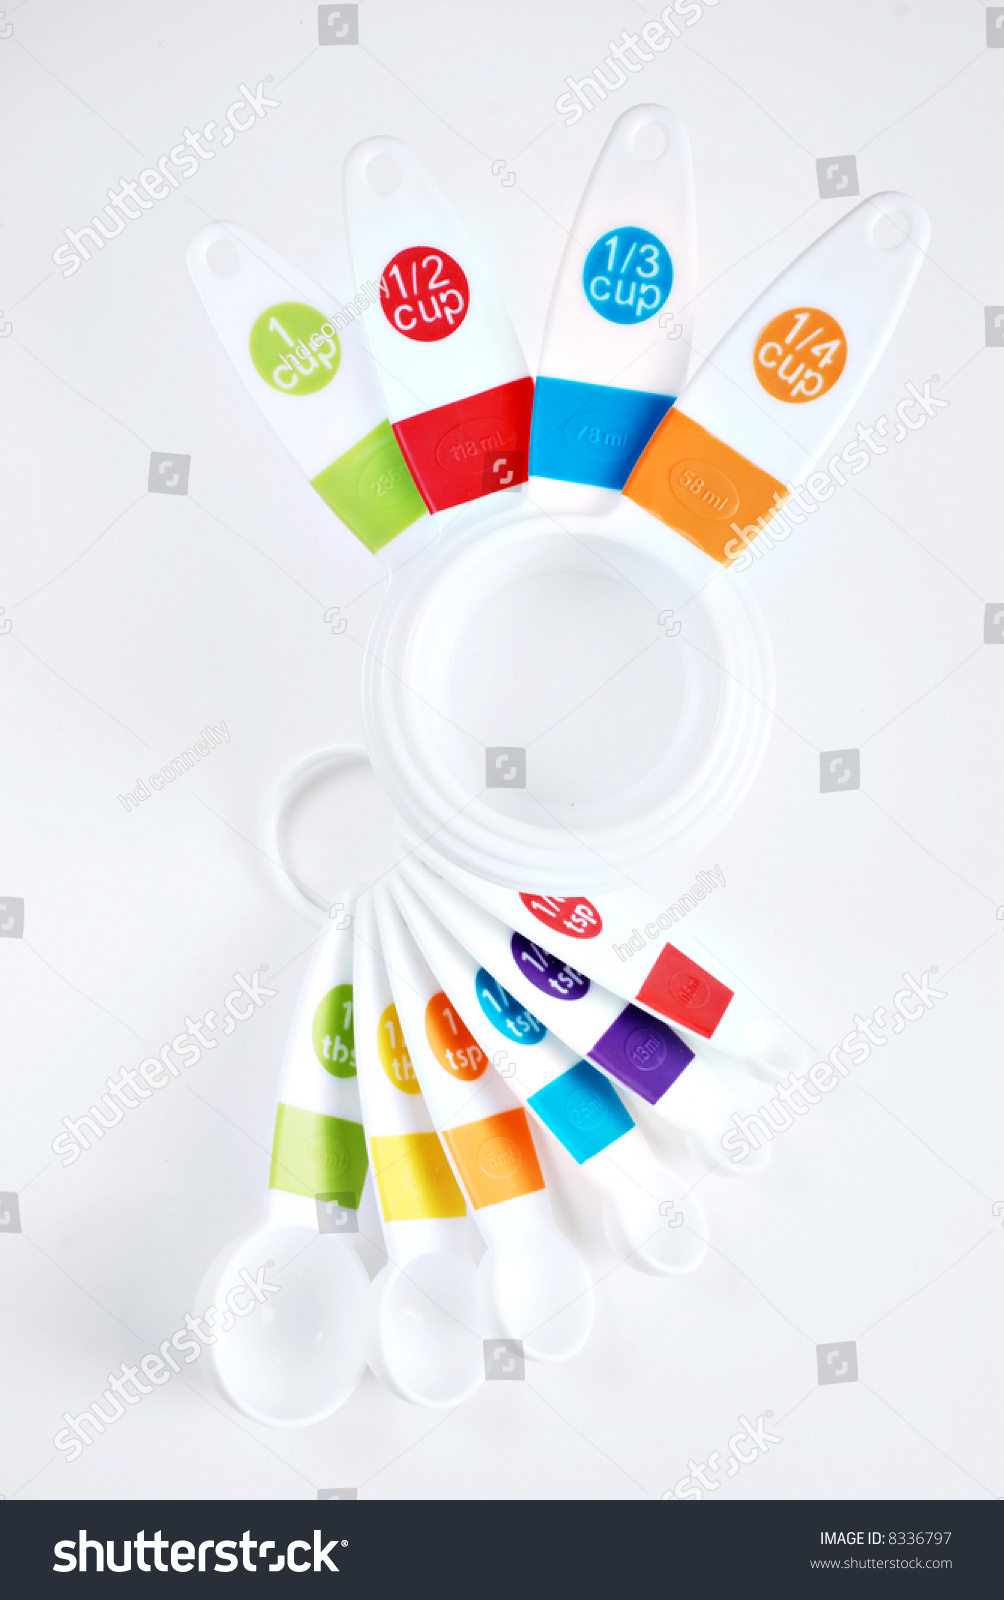 Colorful Spoons: Colorful Measuring Cups And Spoons On White Background